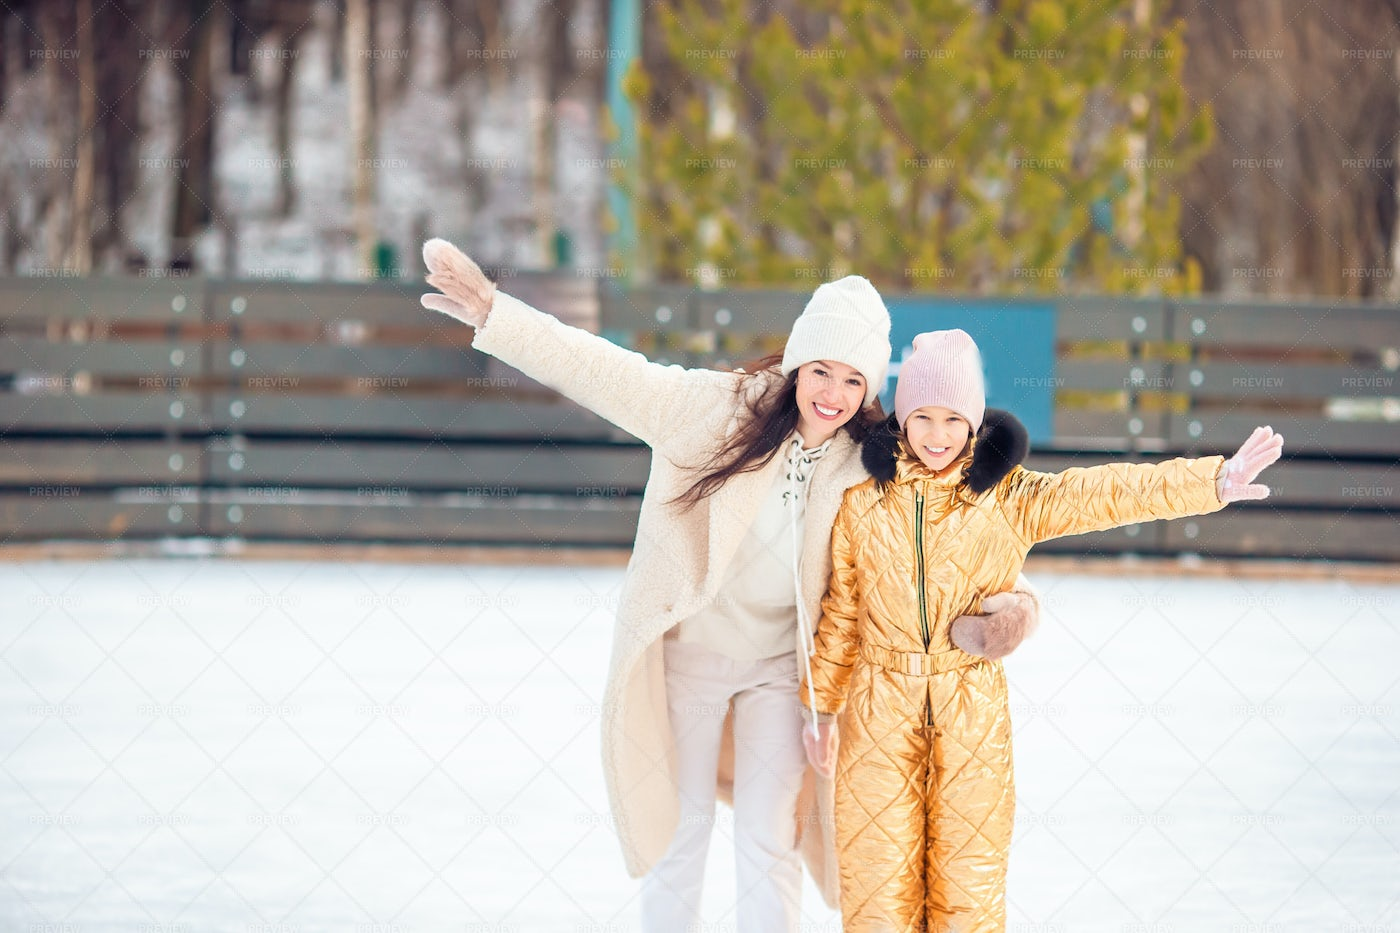 Mother And Daughter Skating: Stock Photos